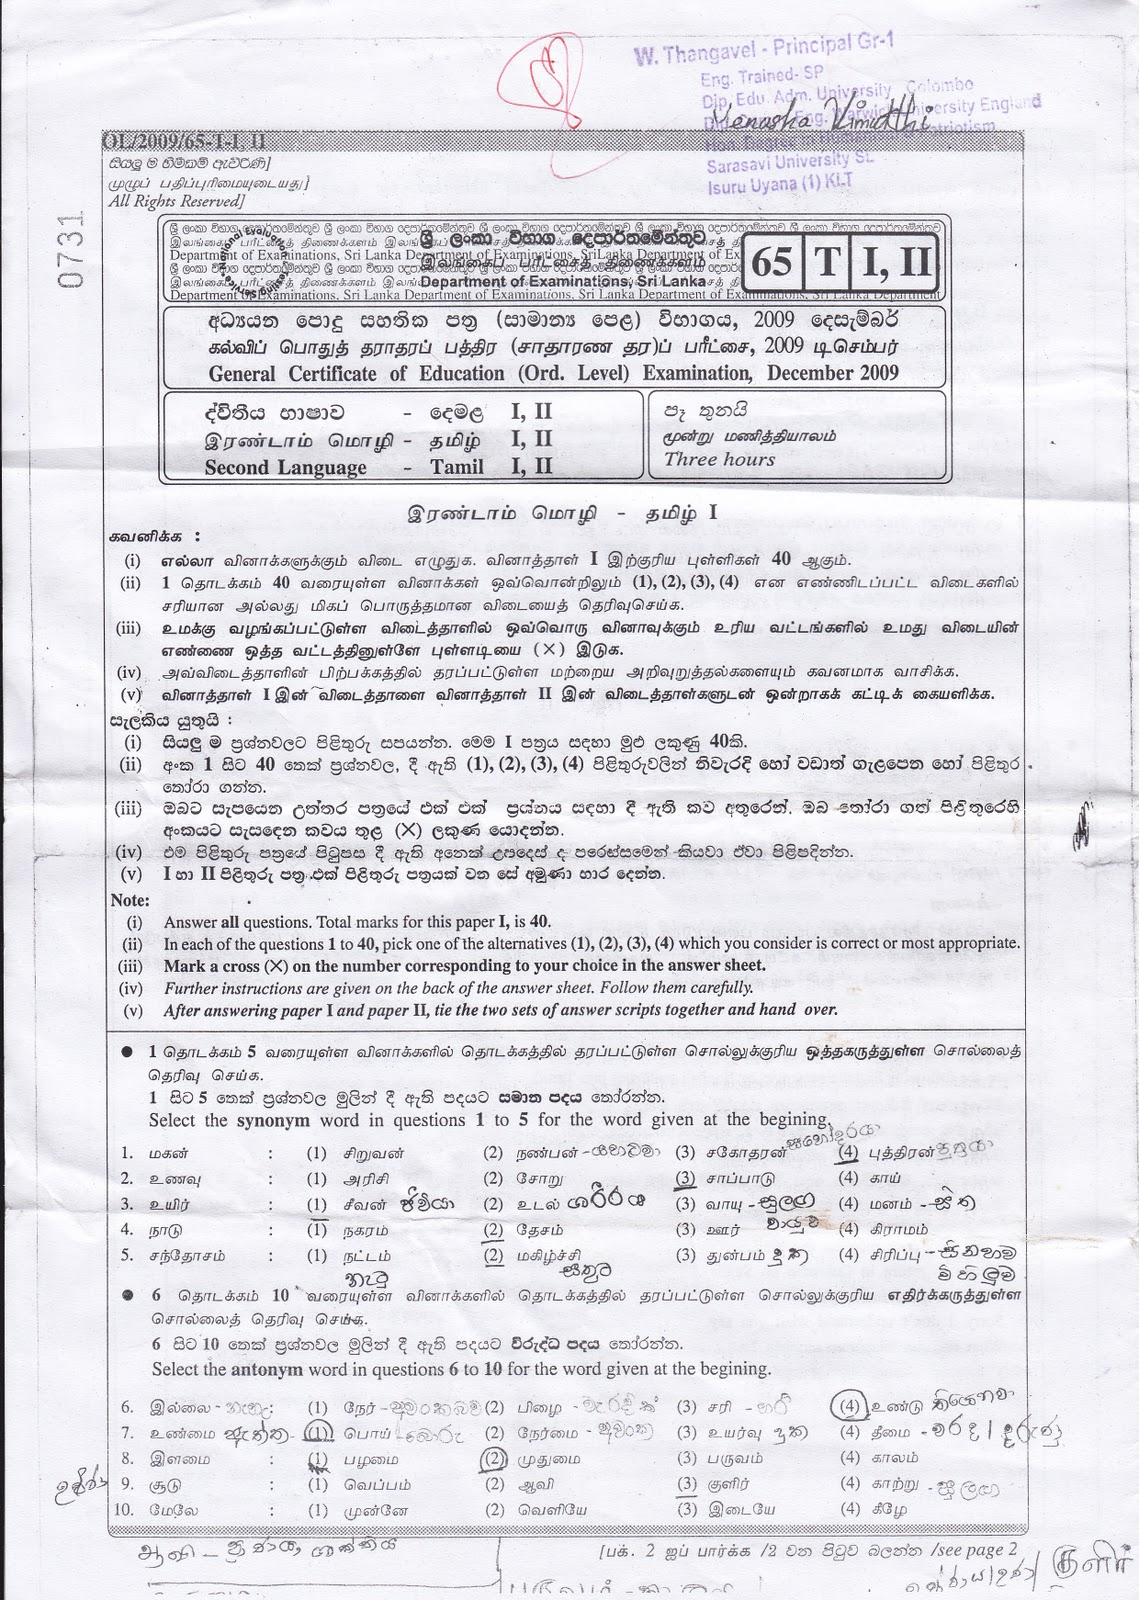 TAMILSRISKANDARAJA: G.C.E O/L TAMIL [SECOND LANGUAGE] PASS